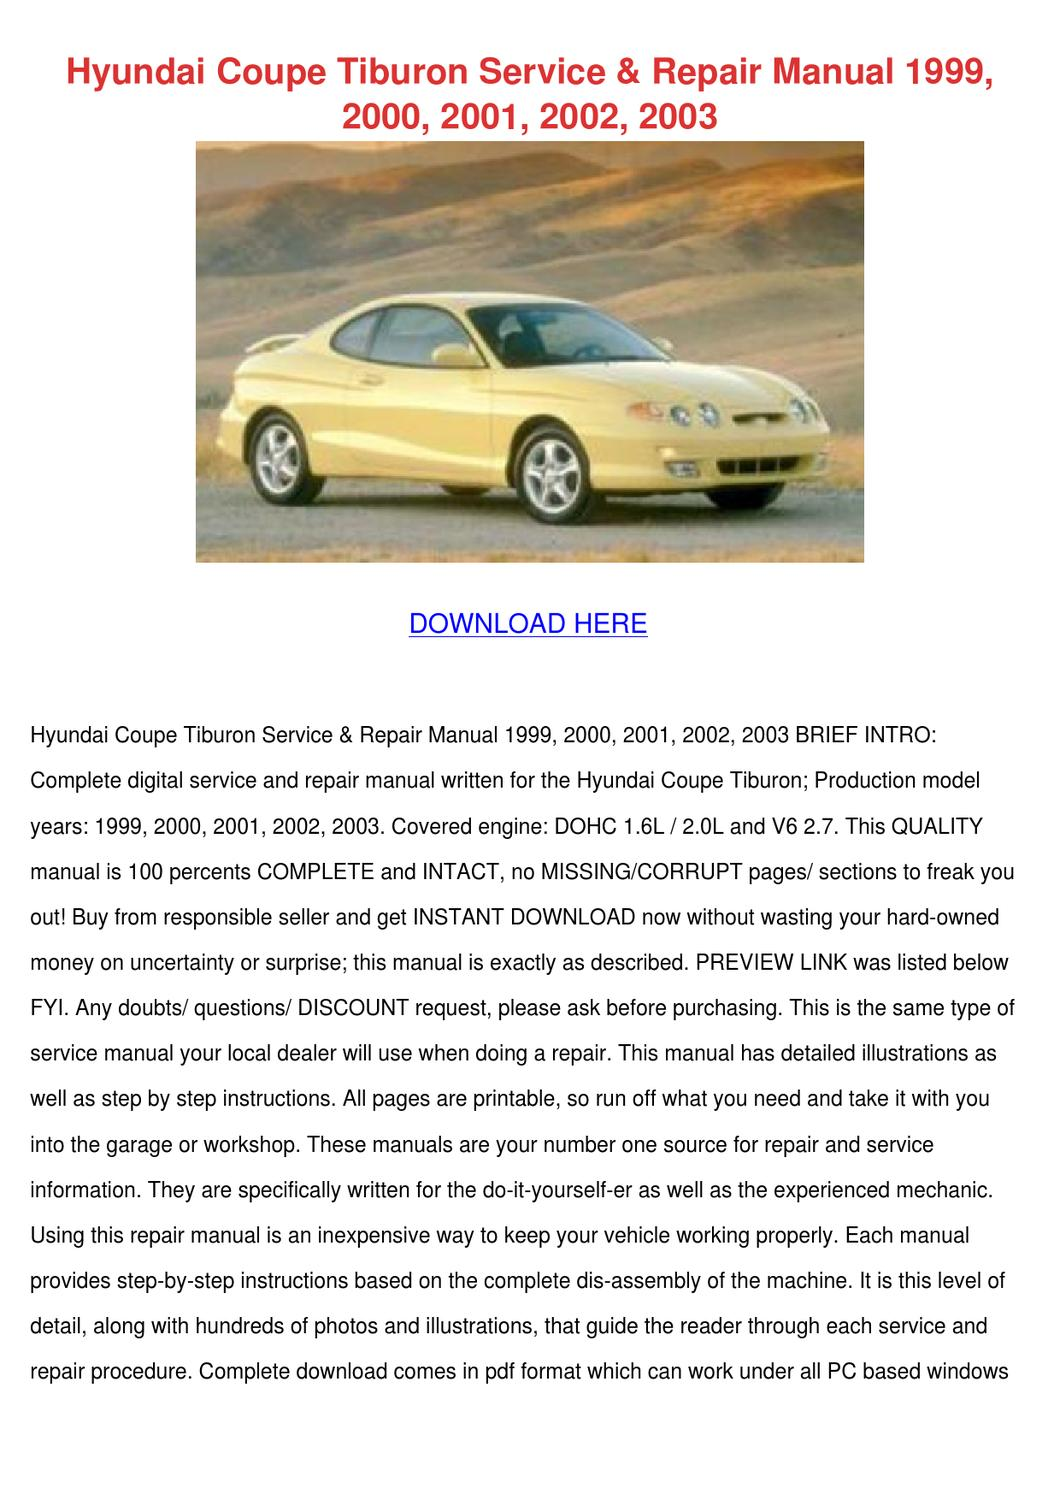 Hyundai tiburon owners manual 2003